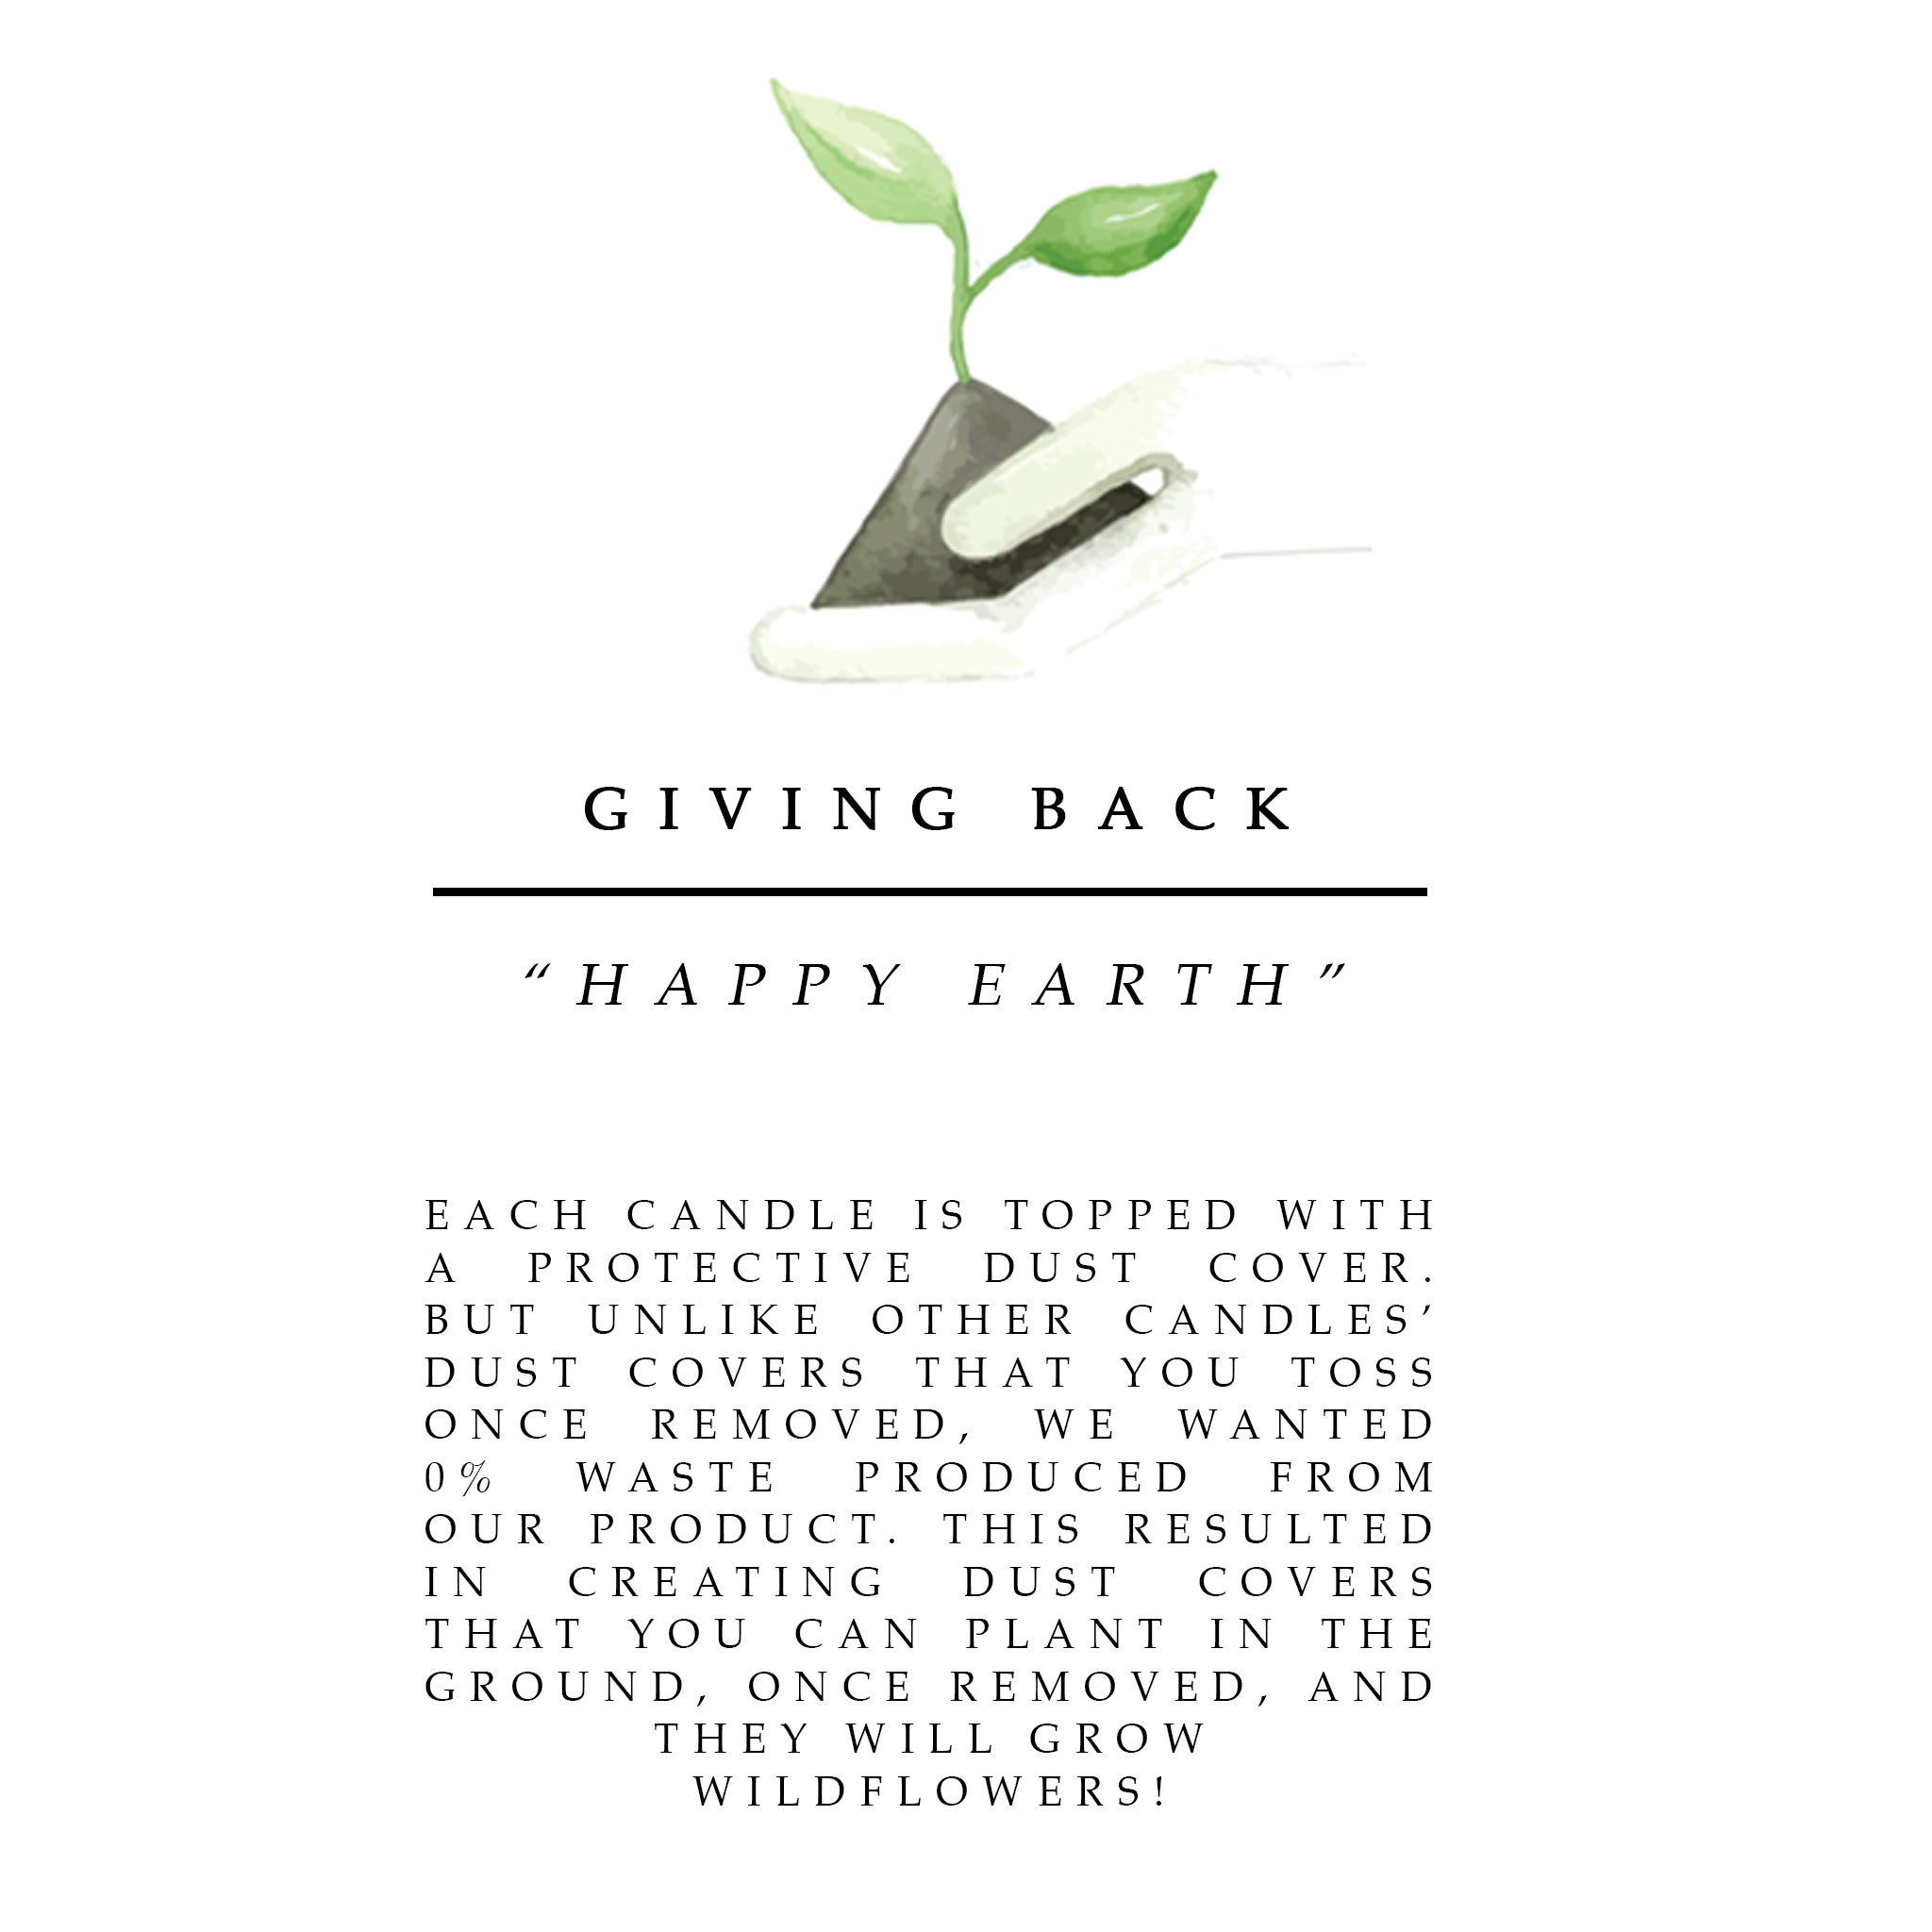 plantable paper give back to earth ecofriendly candles natural candles